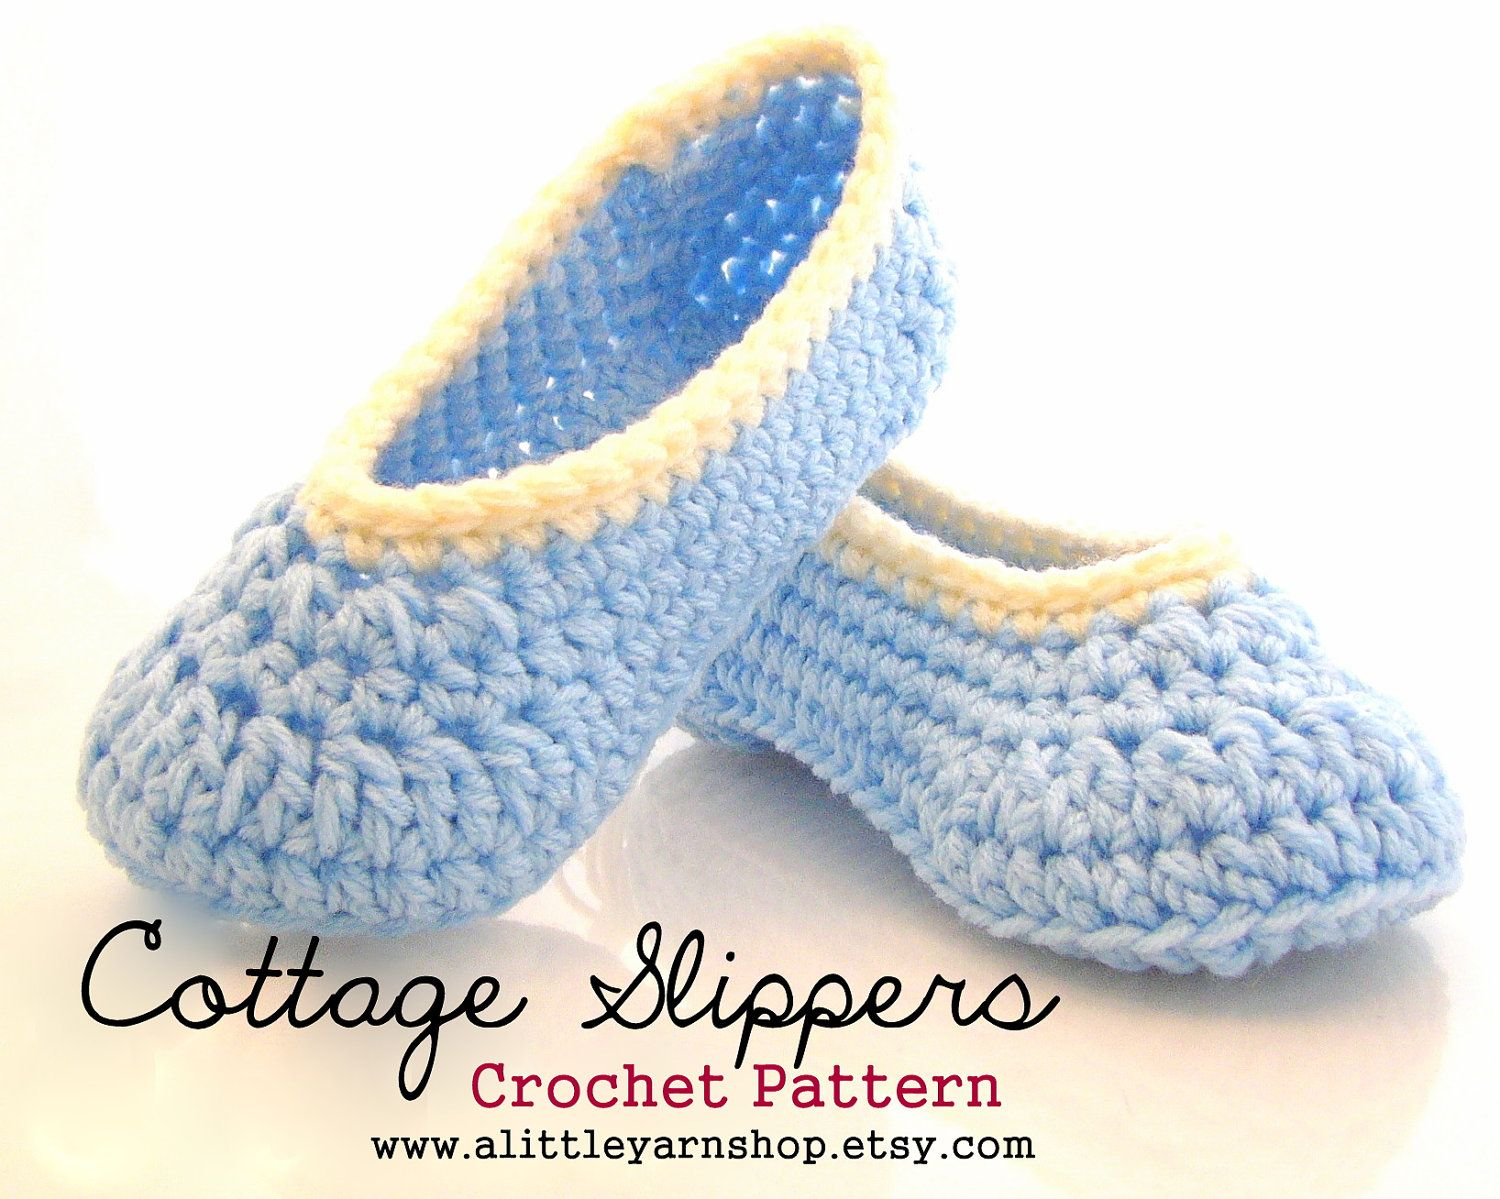 Cottage Slippers Crochet Pattern In Ladies Sizes 500